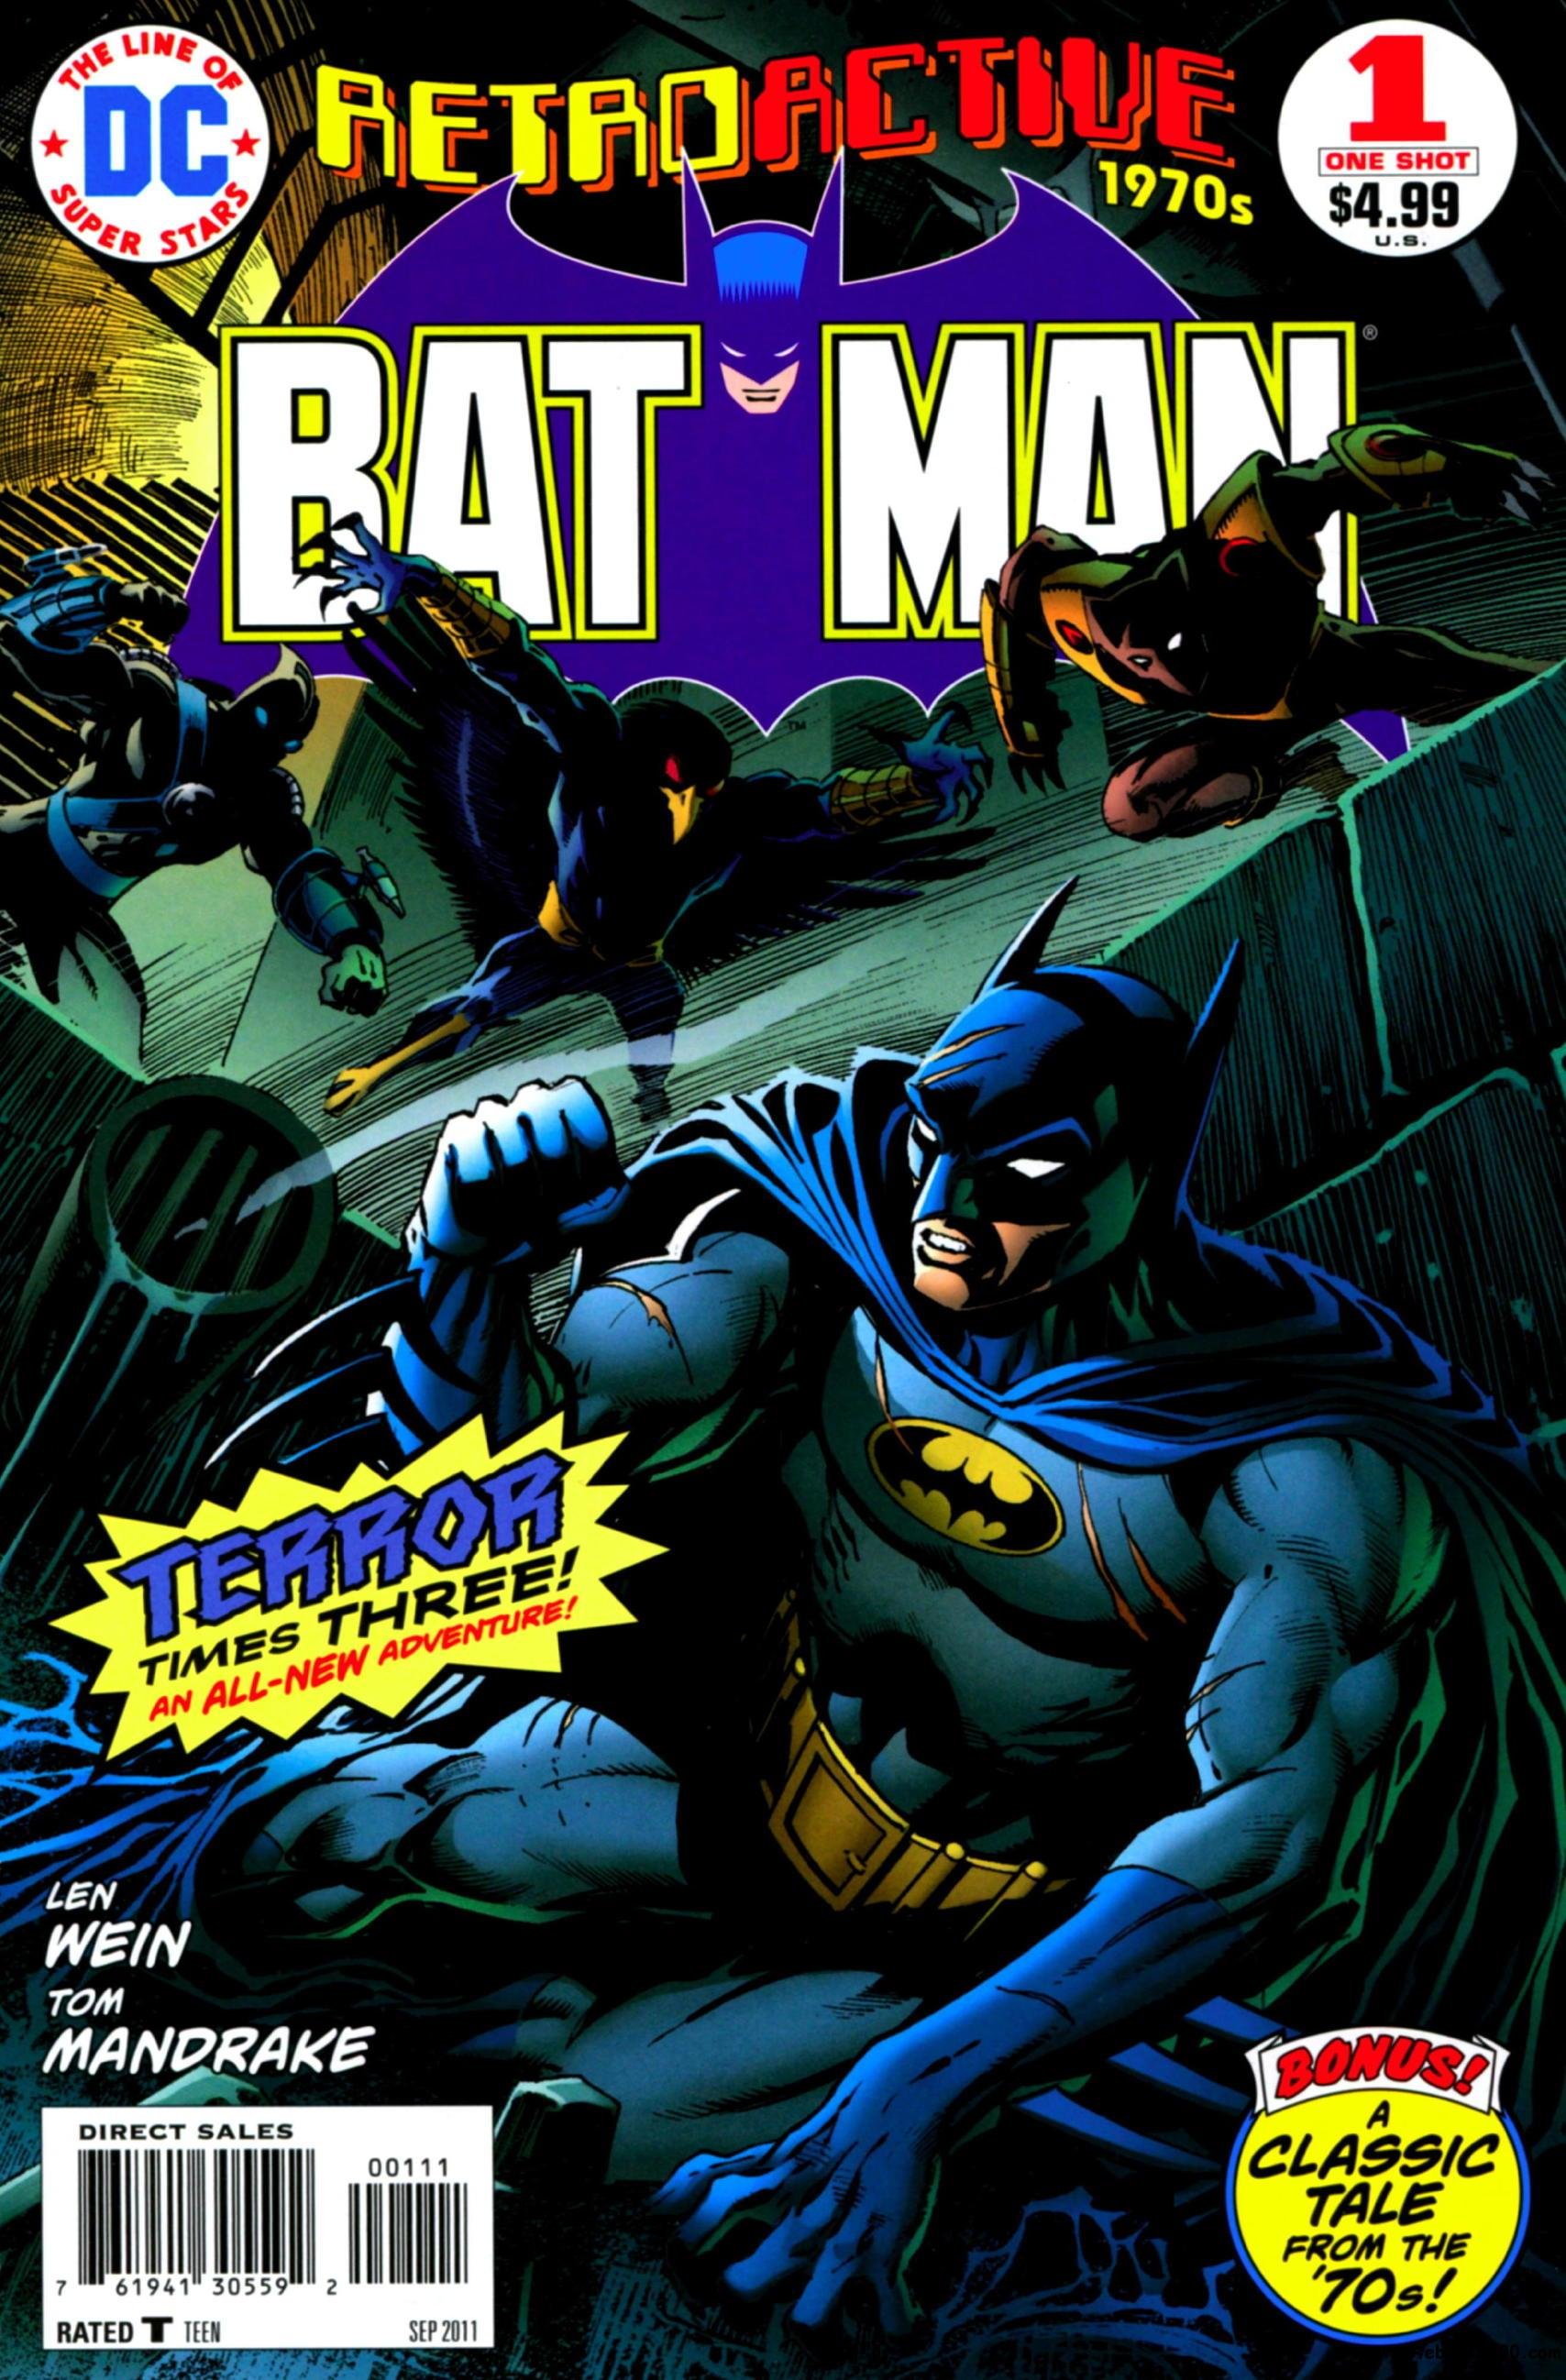 DC Retroactive: Batman - The 70s #1 (2011) free download